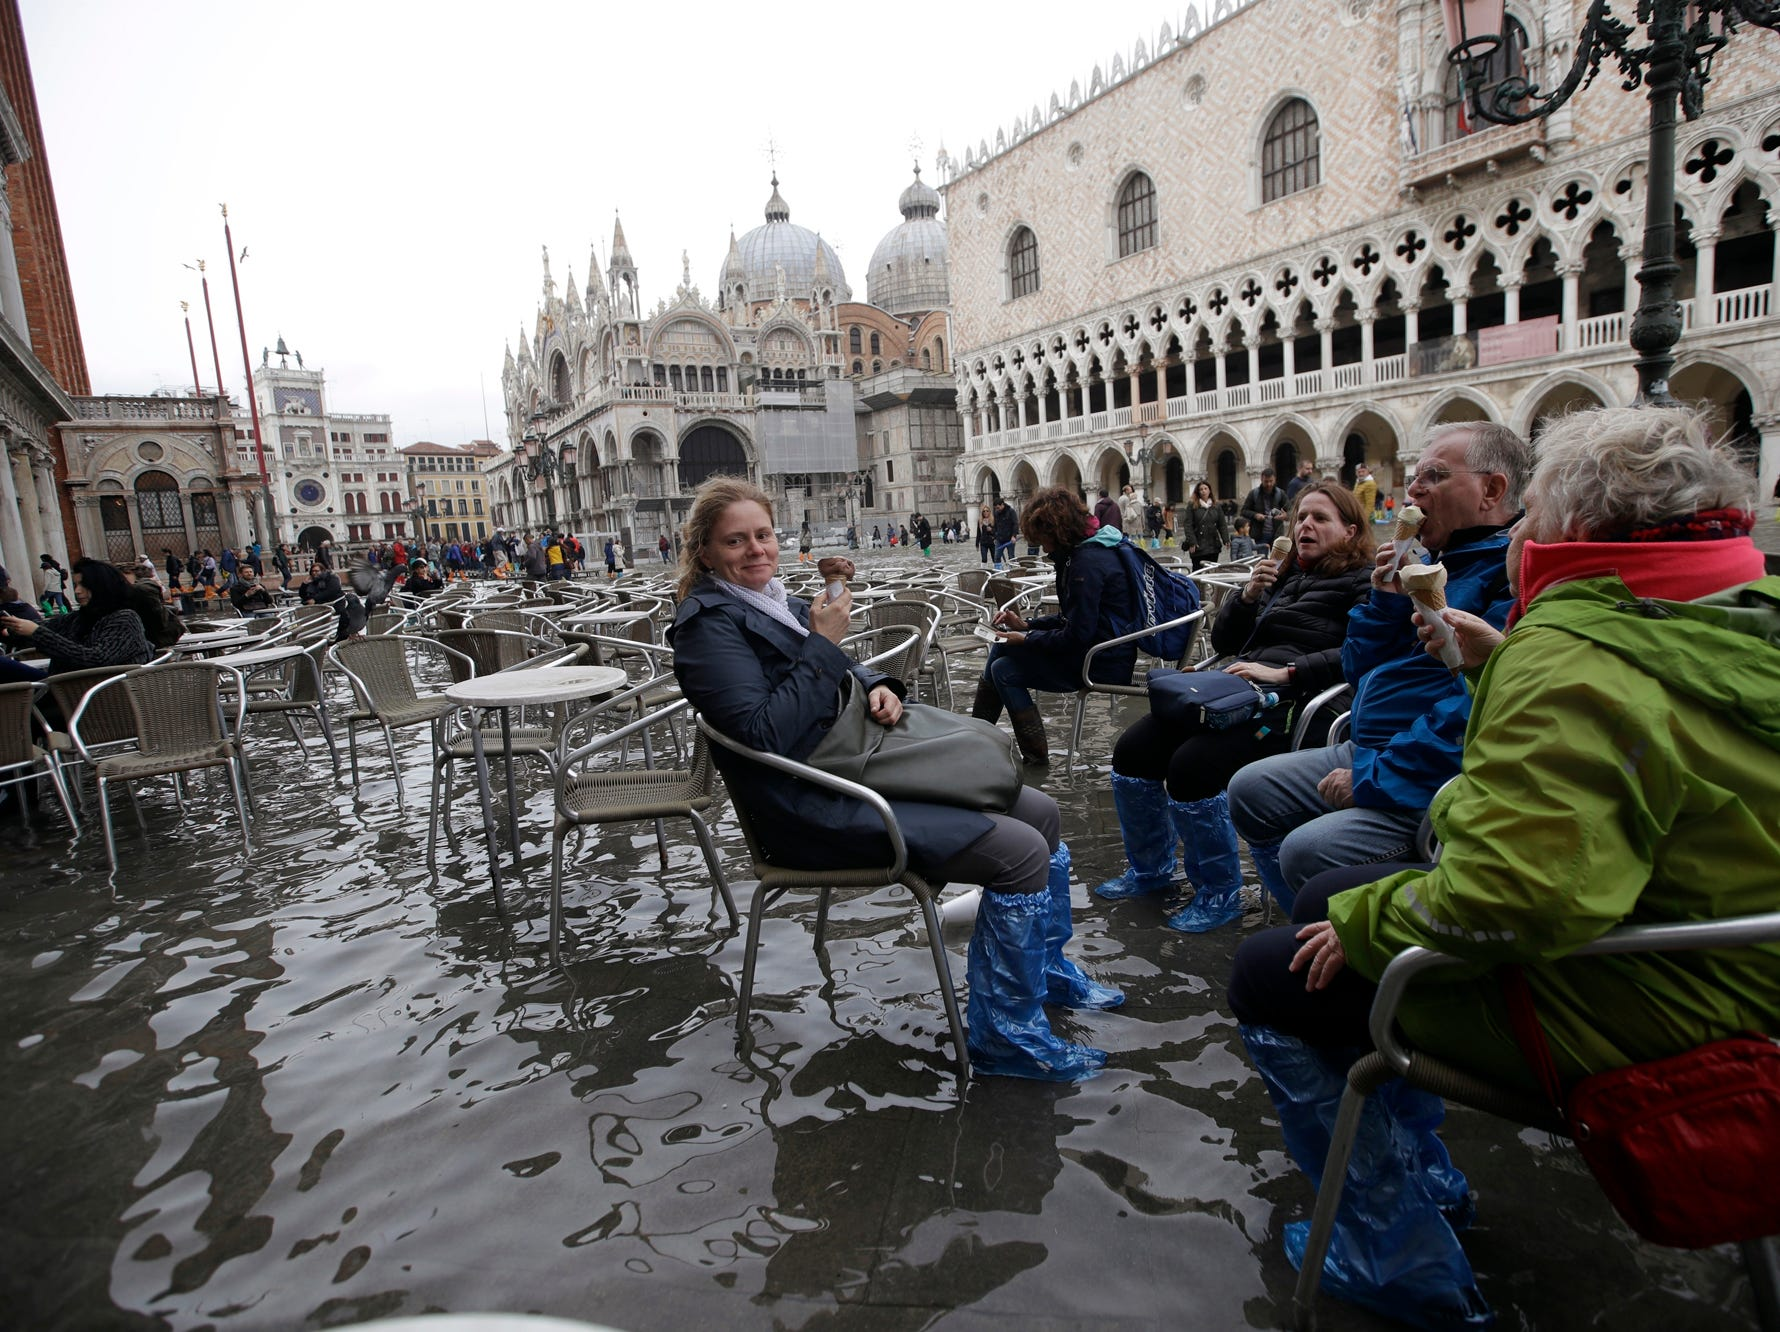 Tourists enjoy an ice-cream as they sit in flooded St. Mark's Square in Venice, Italy, Thursday, Nov. 1, 2018 as rainstorms and strong winds have been battering the country. Two people were killed when a falling tree crushed their car in the mountainous countryside in northwestern Italy, as rainstorms and strong winds continued to pummel much of the country. (AP Photo/Luca Bruno)